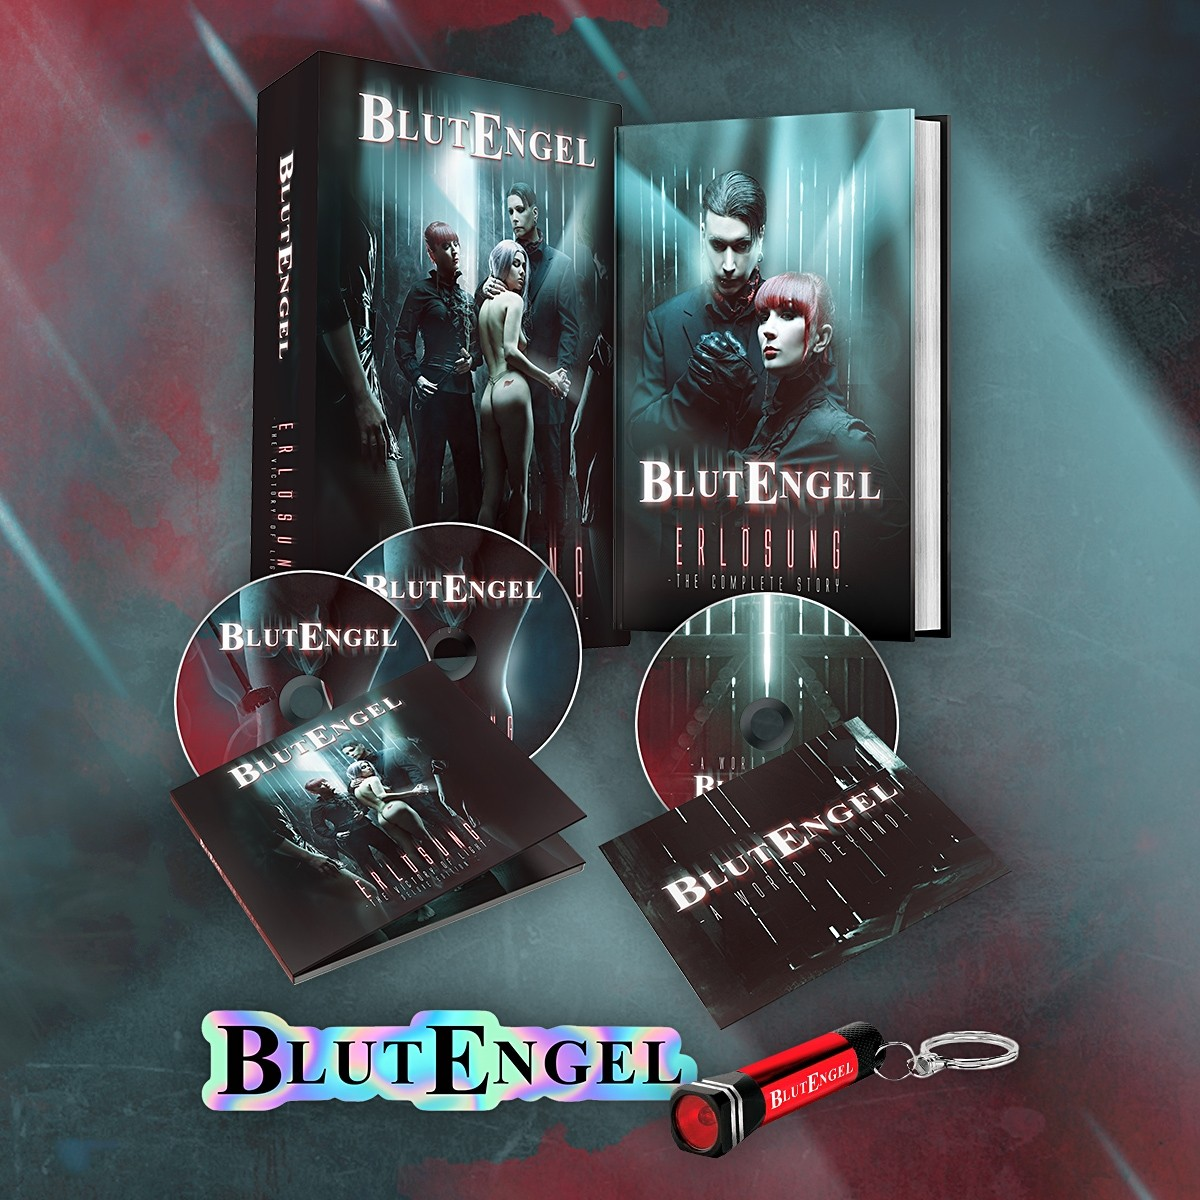 Blutengel - Erlösung - The Victory Of Light (Limited Edition) - BOX